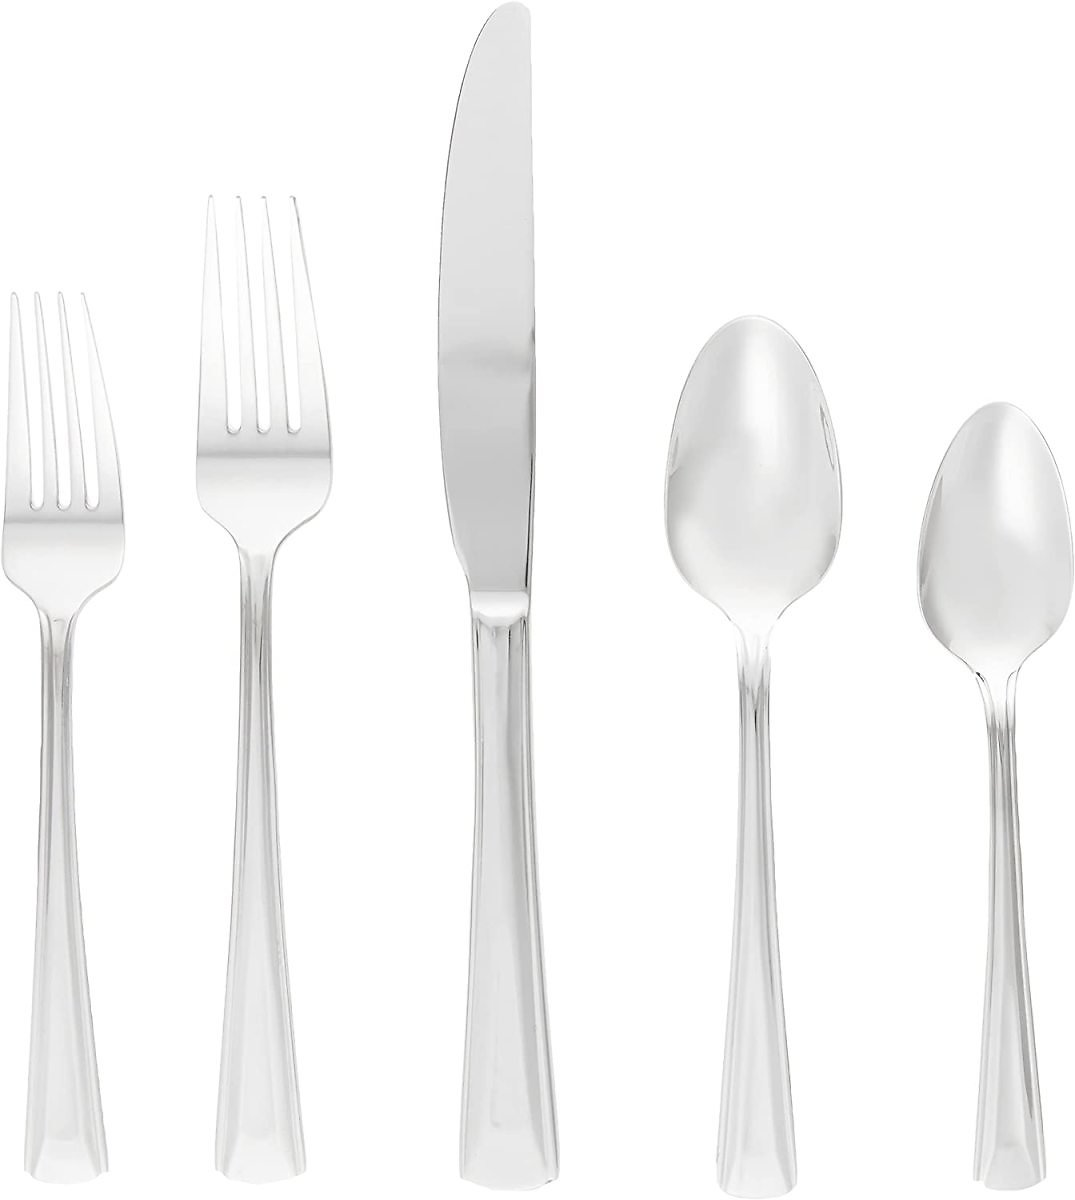 42-Piece Oneida Cella Everyday Stainless Steel Flatware Set for $51.70